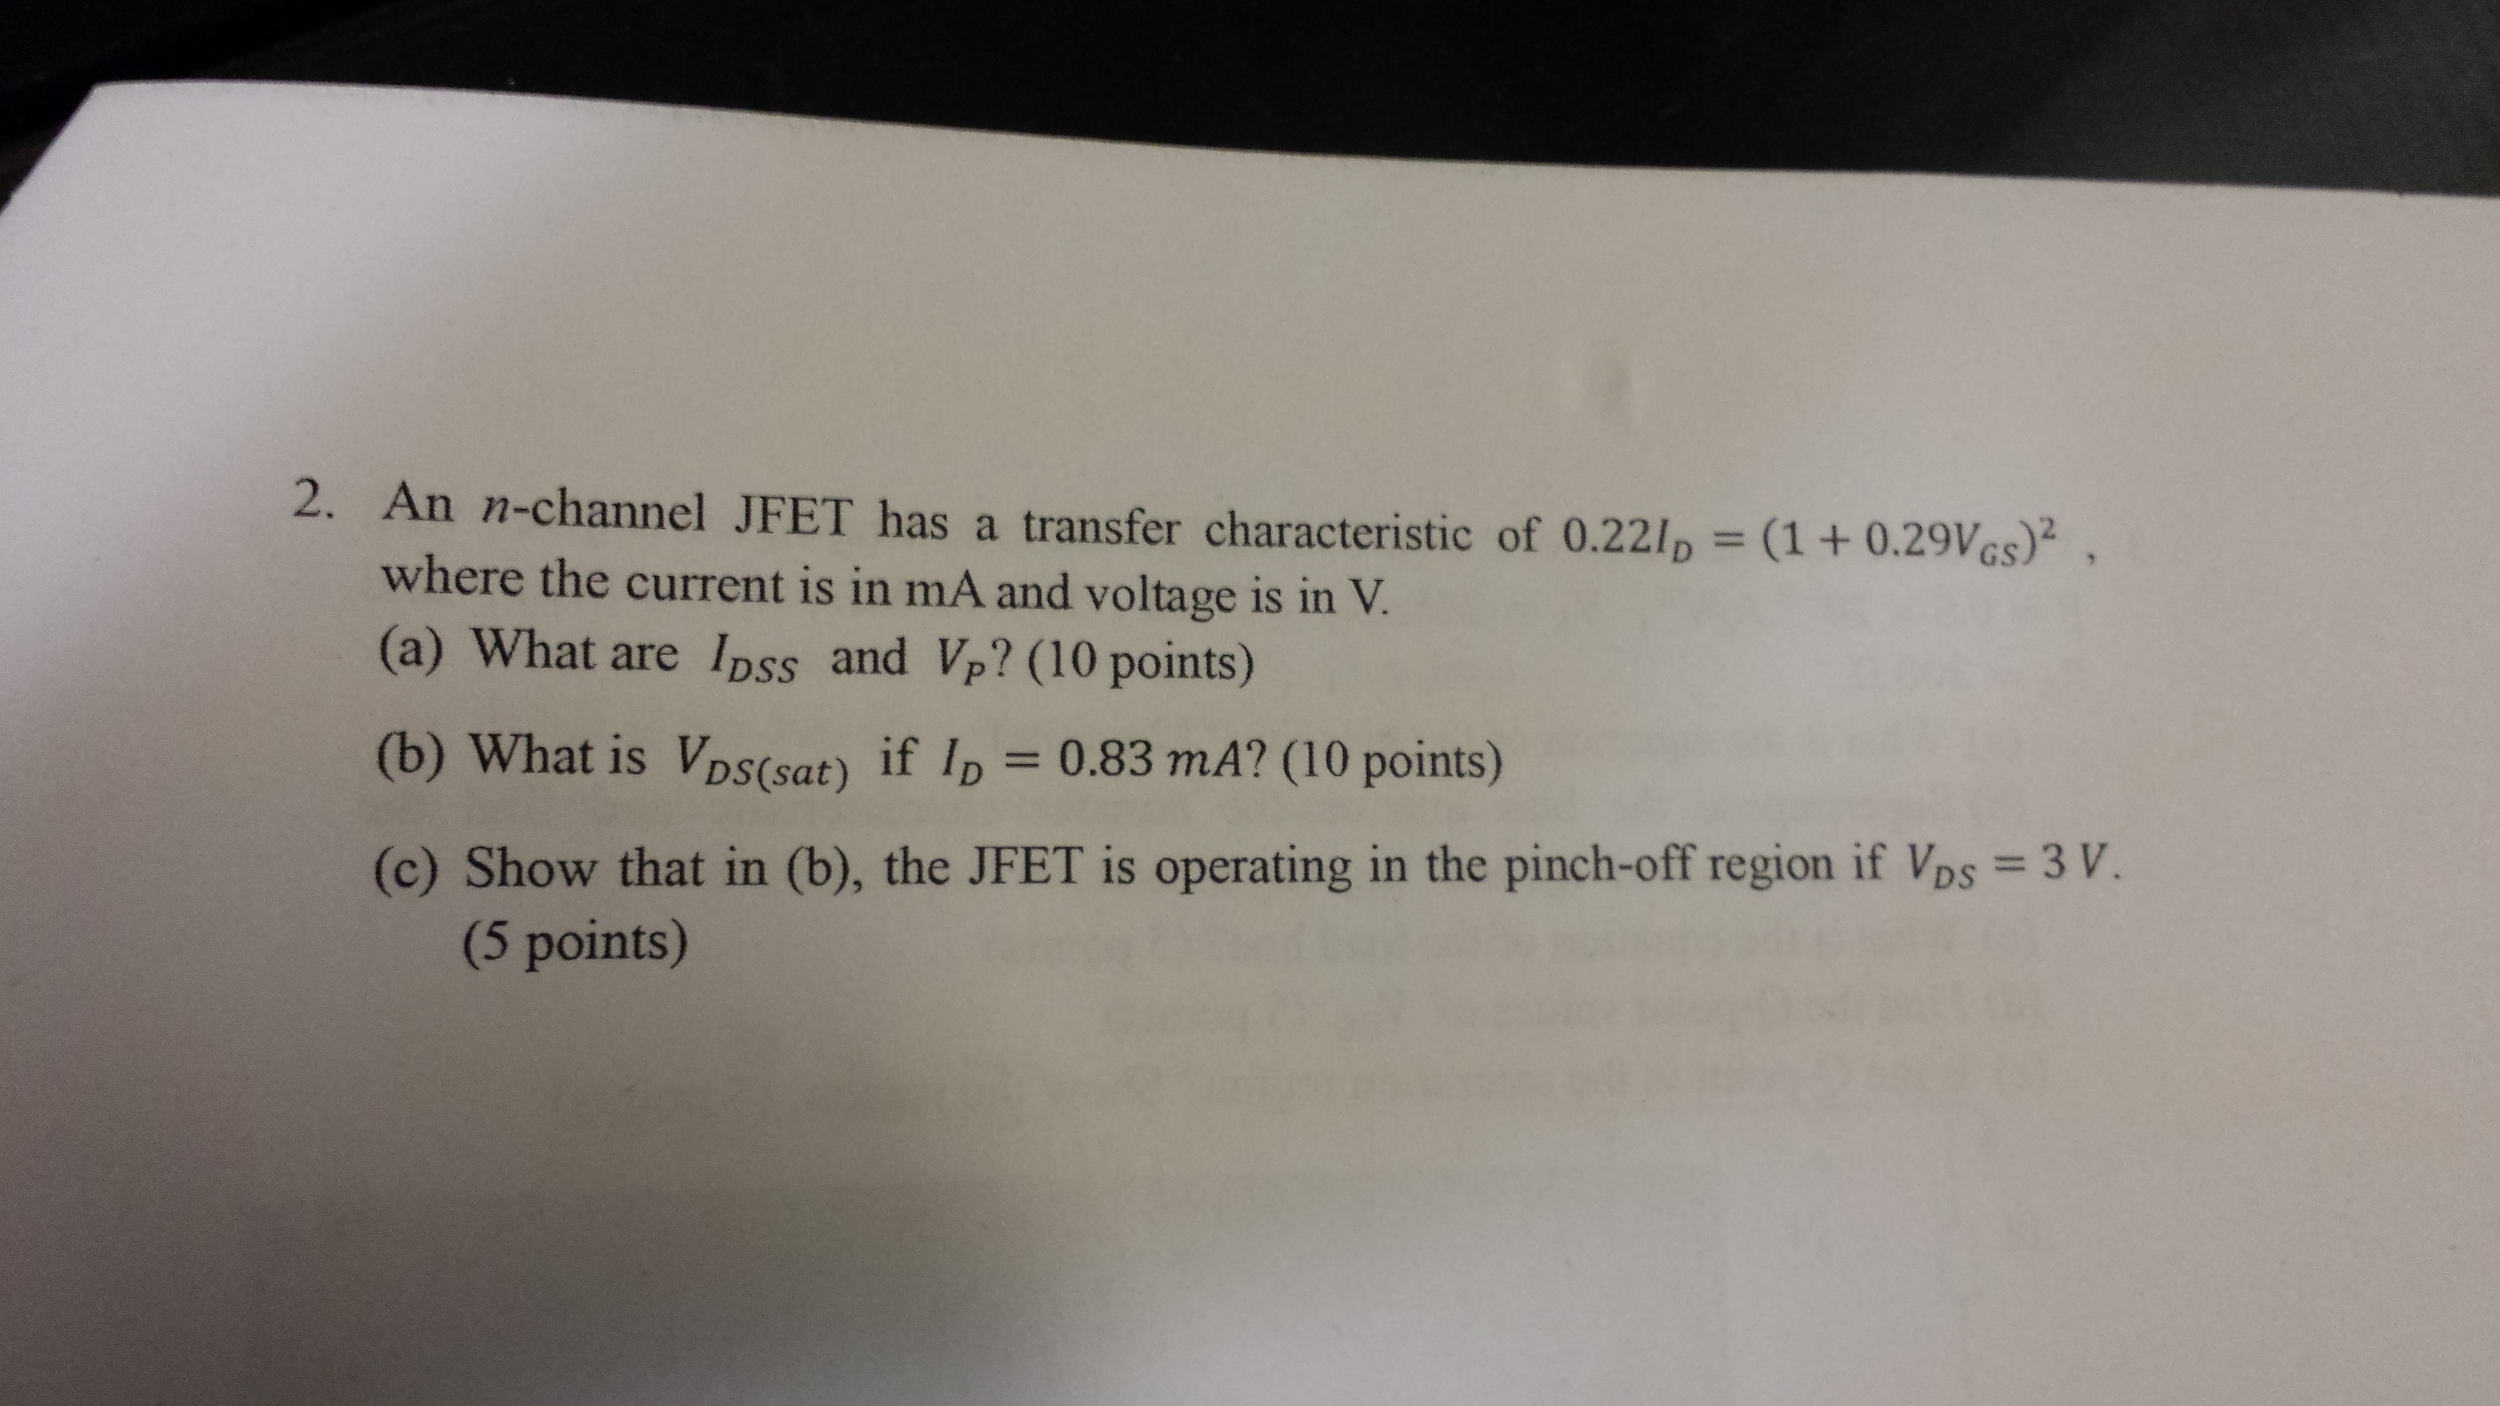 An n-channel JFET has a transfer characteristic of